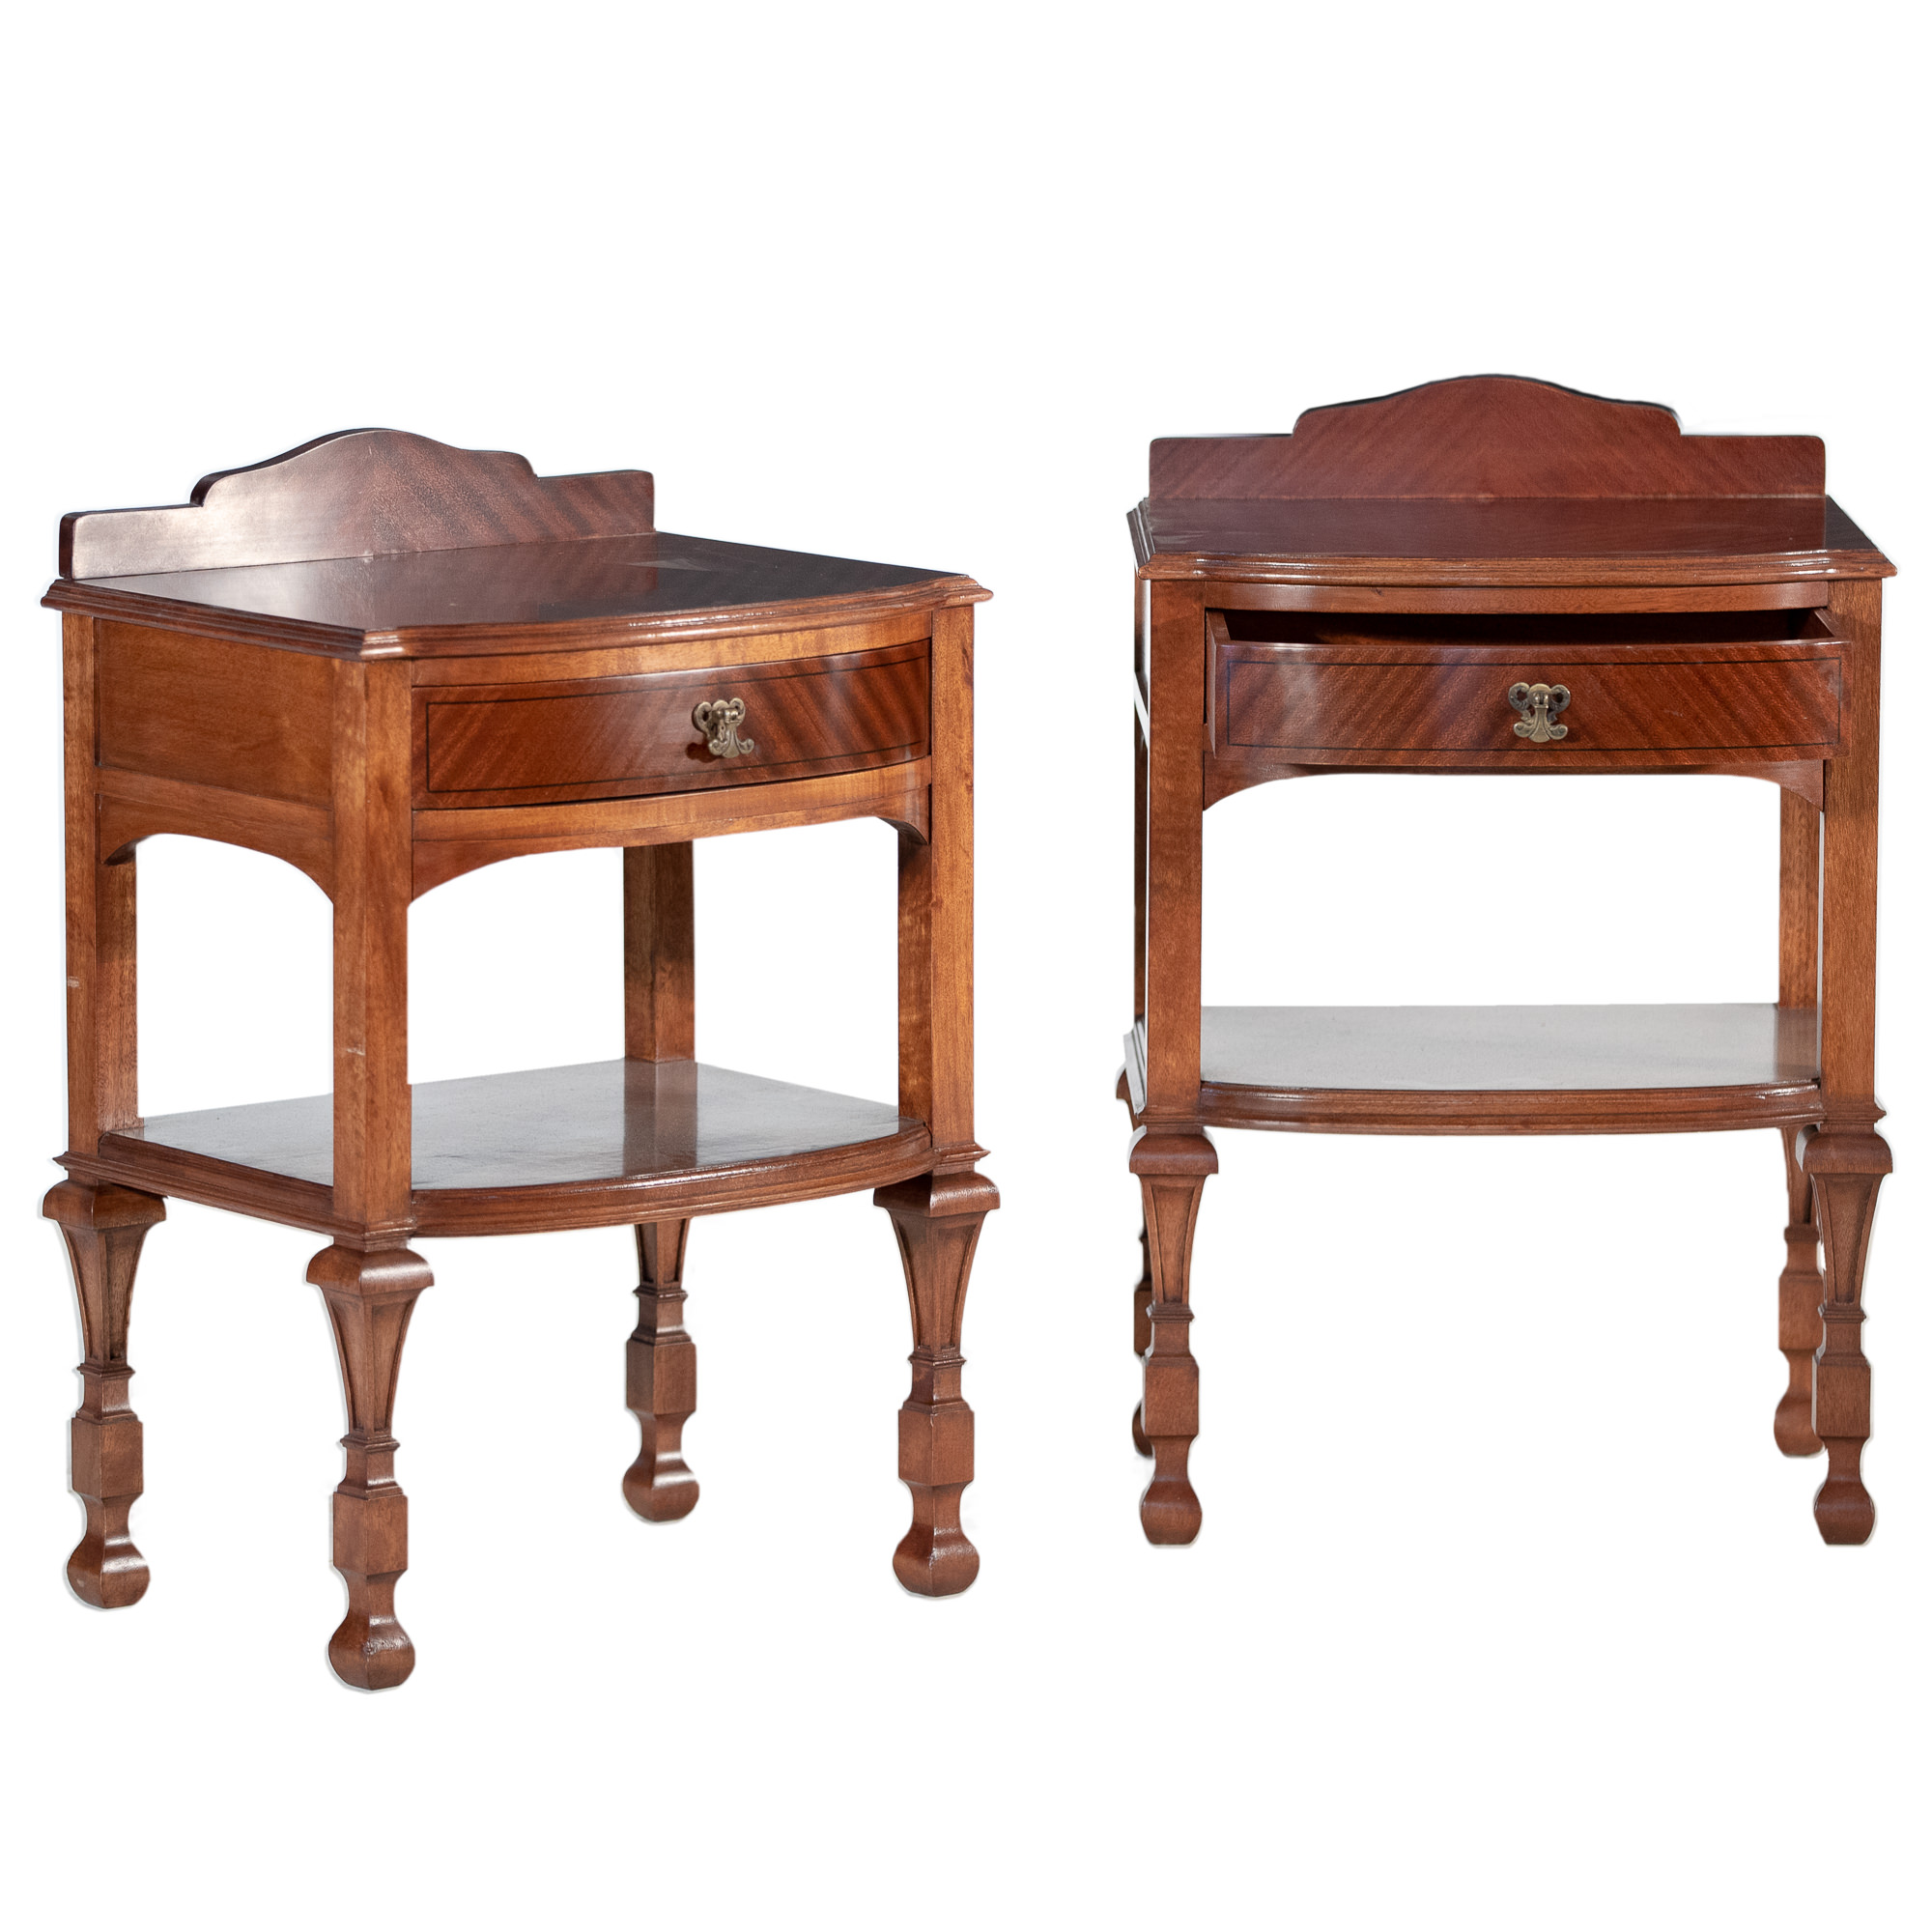 'Pair Of Queensland Maple Bedside Tables Circa 1930s'